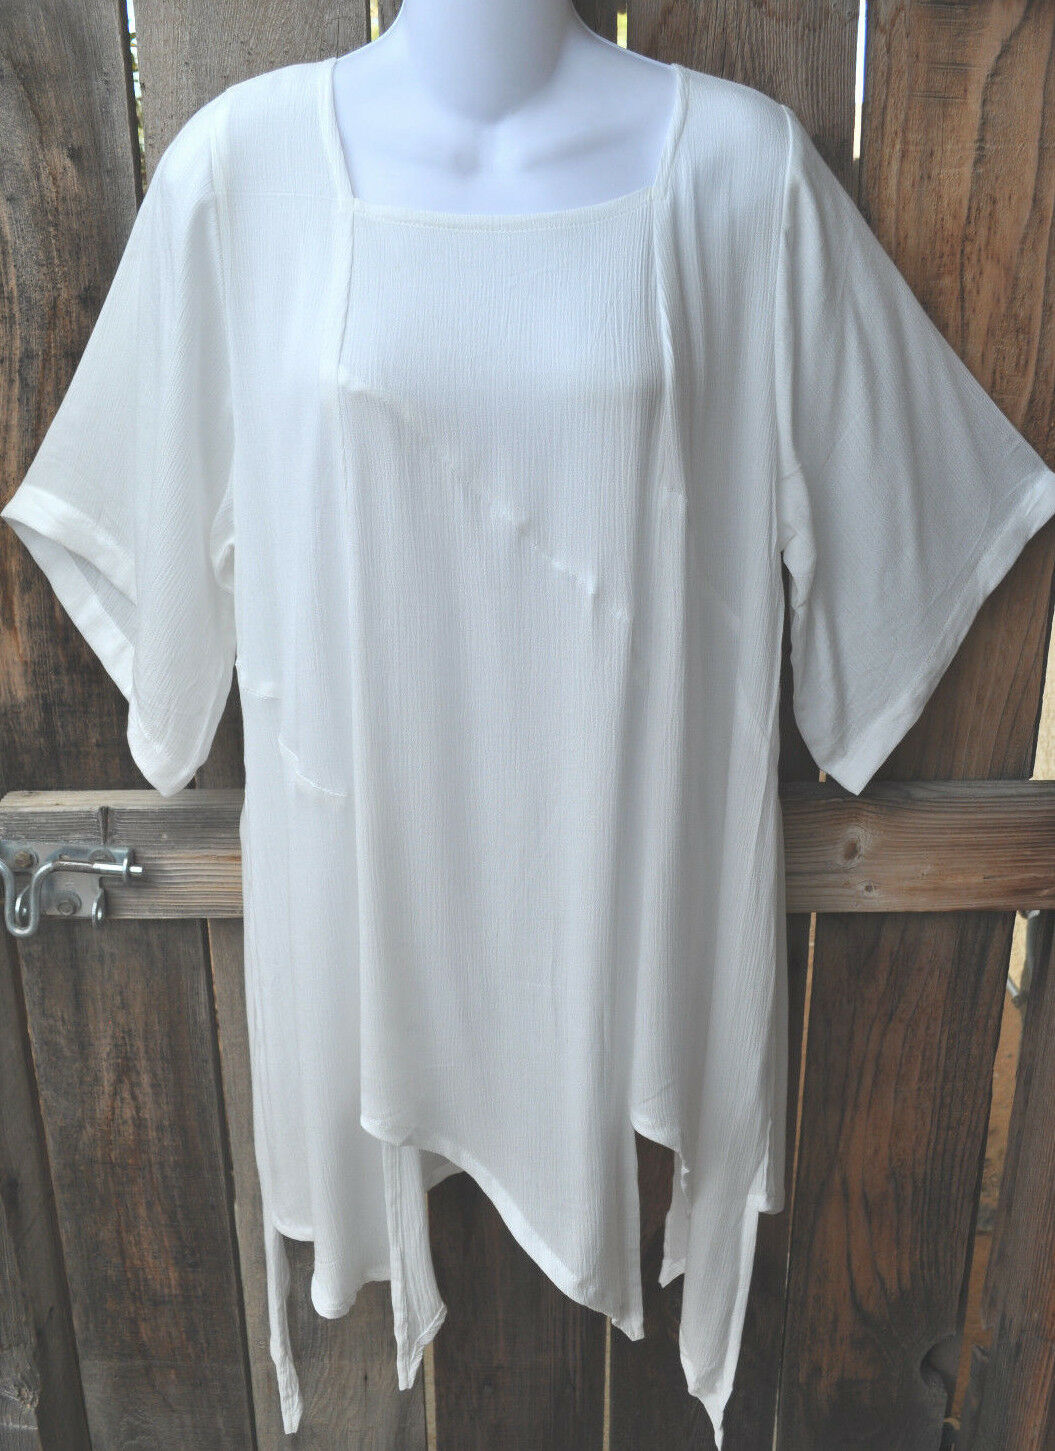 ART TO WEAR MISSION CANYON 74+ PIXIE HEM TUNIC IN CLASSIC SOLID Weiß, OS+,50 B